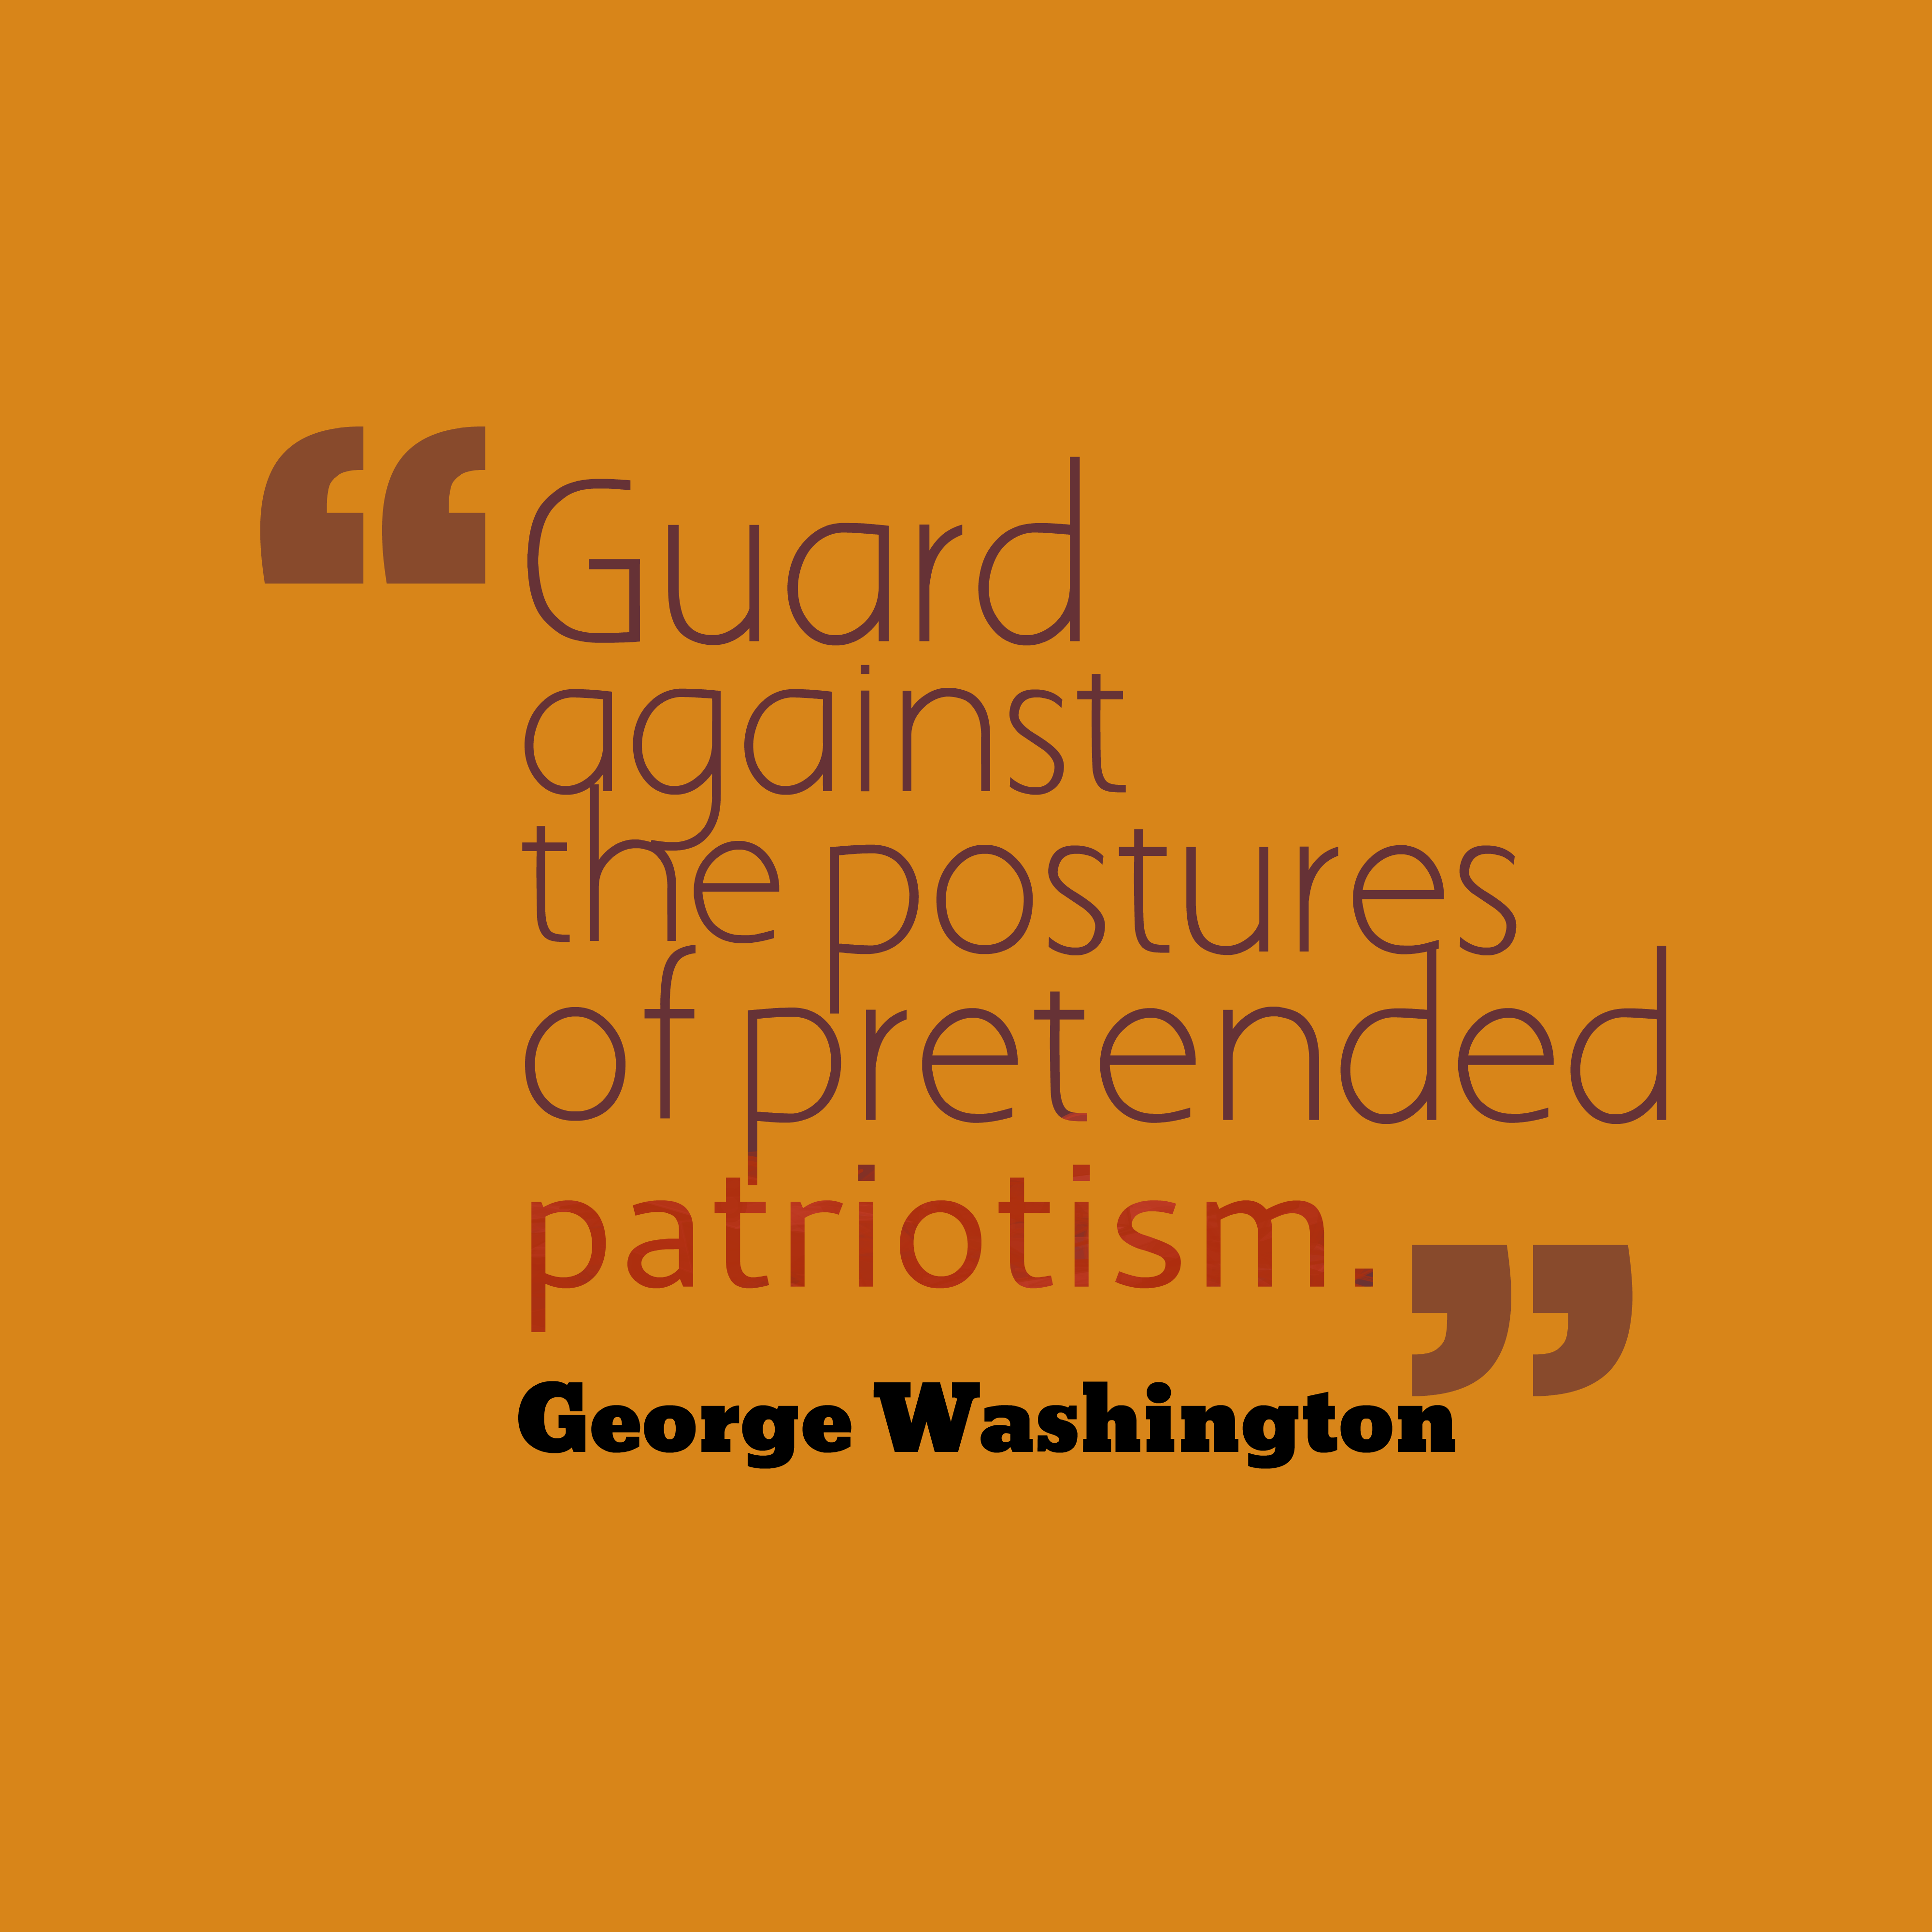 Quotes image of Guard against the postures of pretended patriotism.